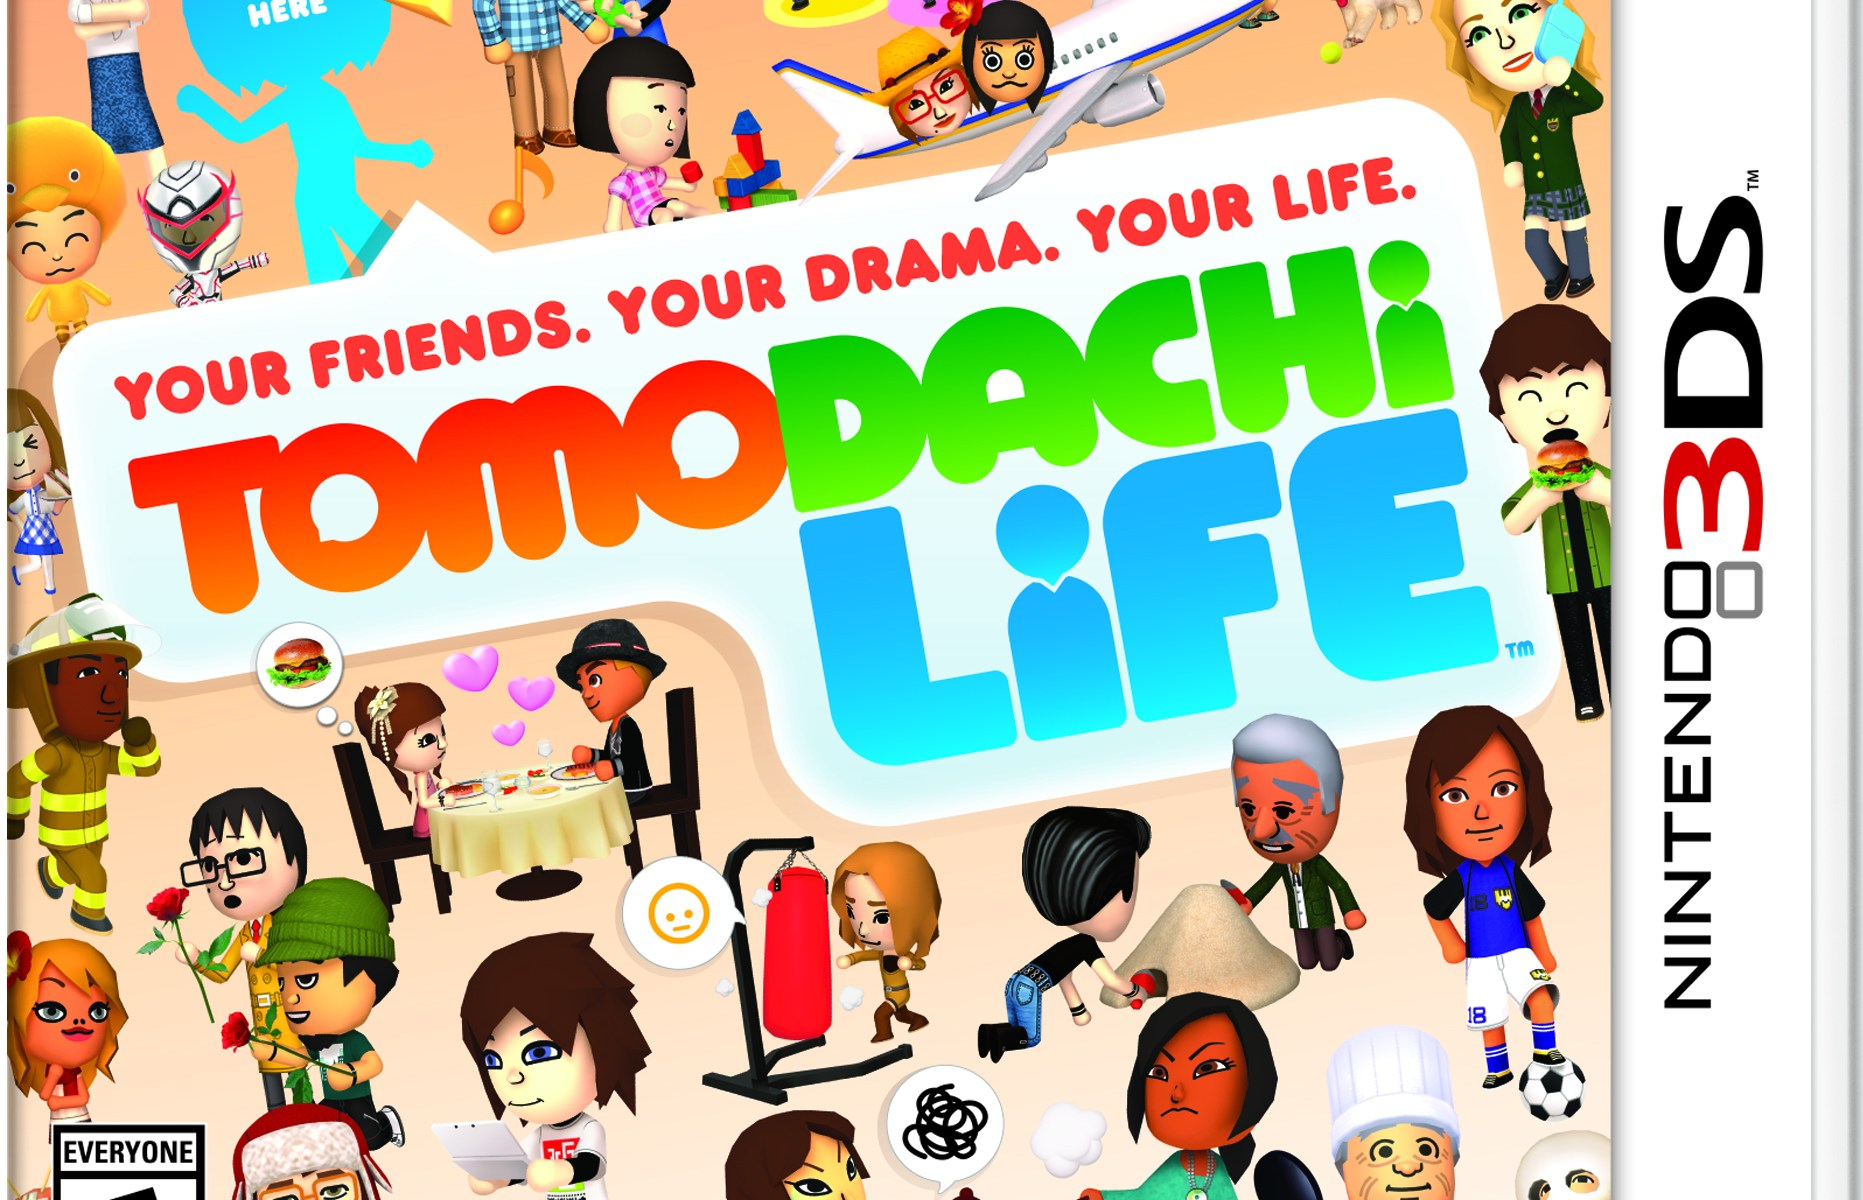 Relationship ruin in how life a to tomodachi Nintendo explains